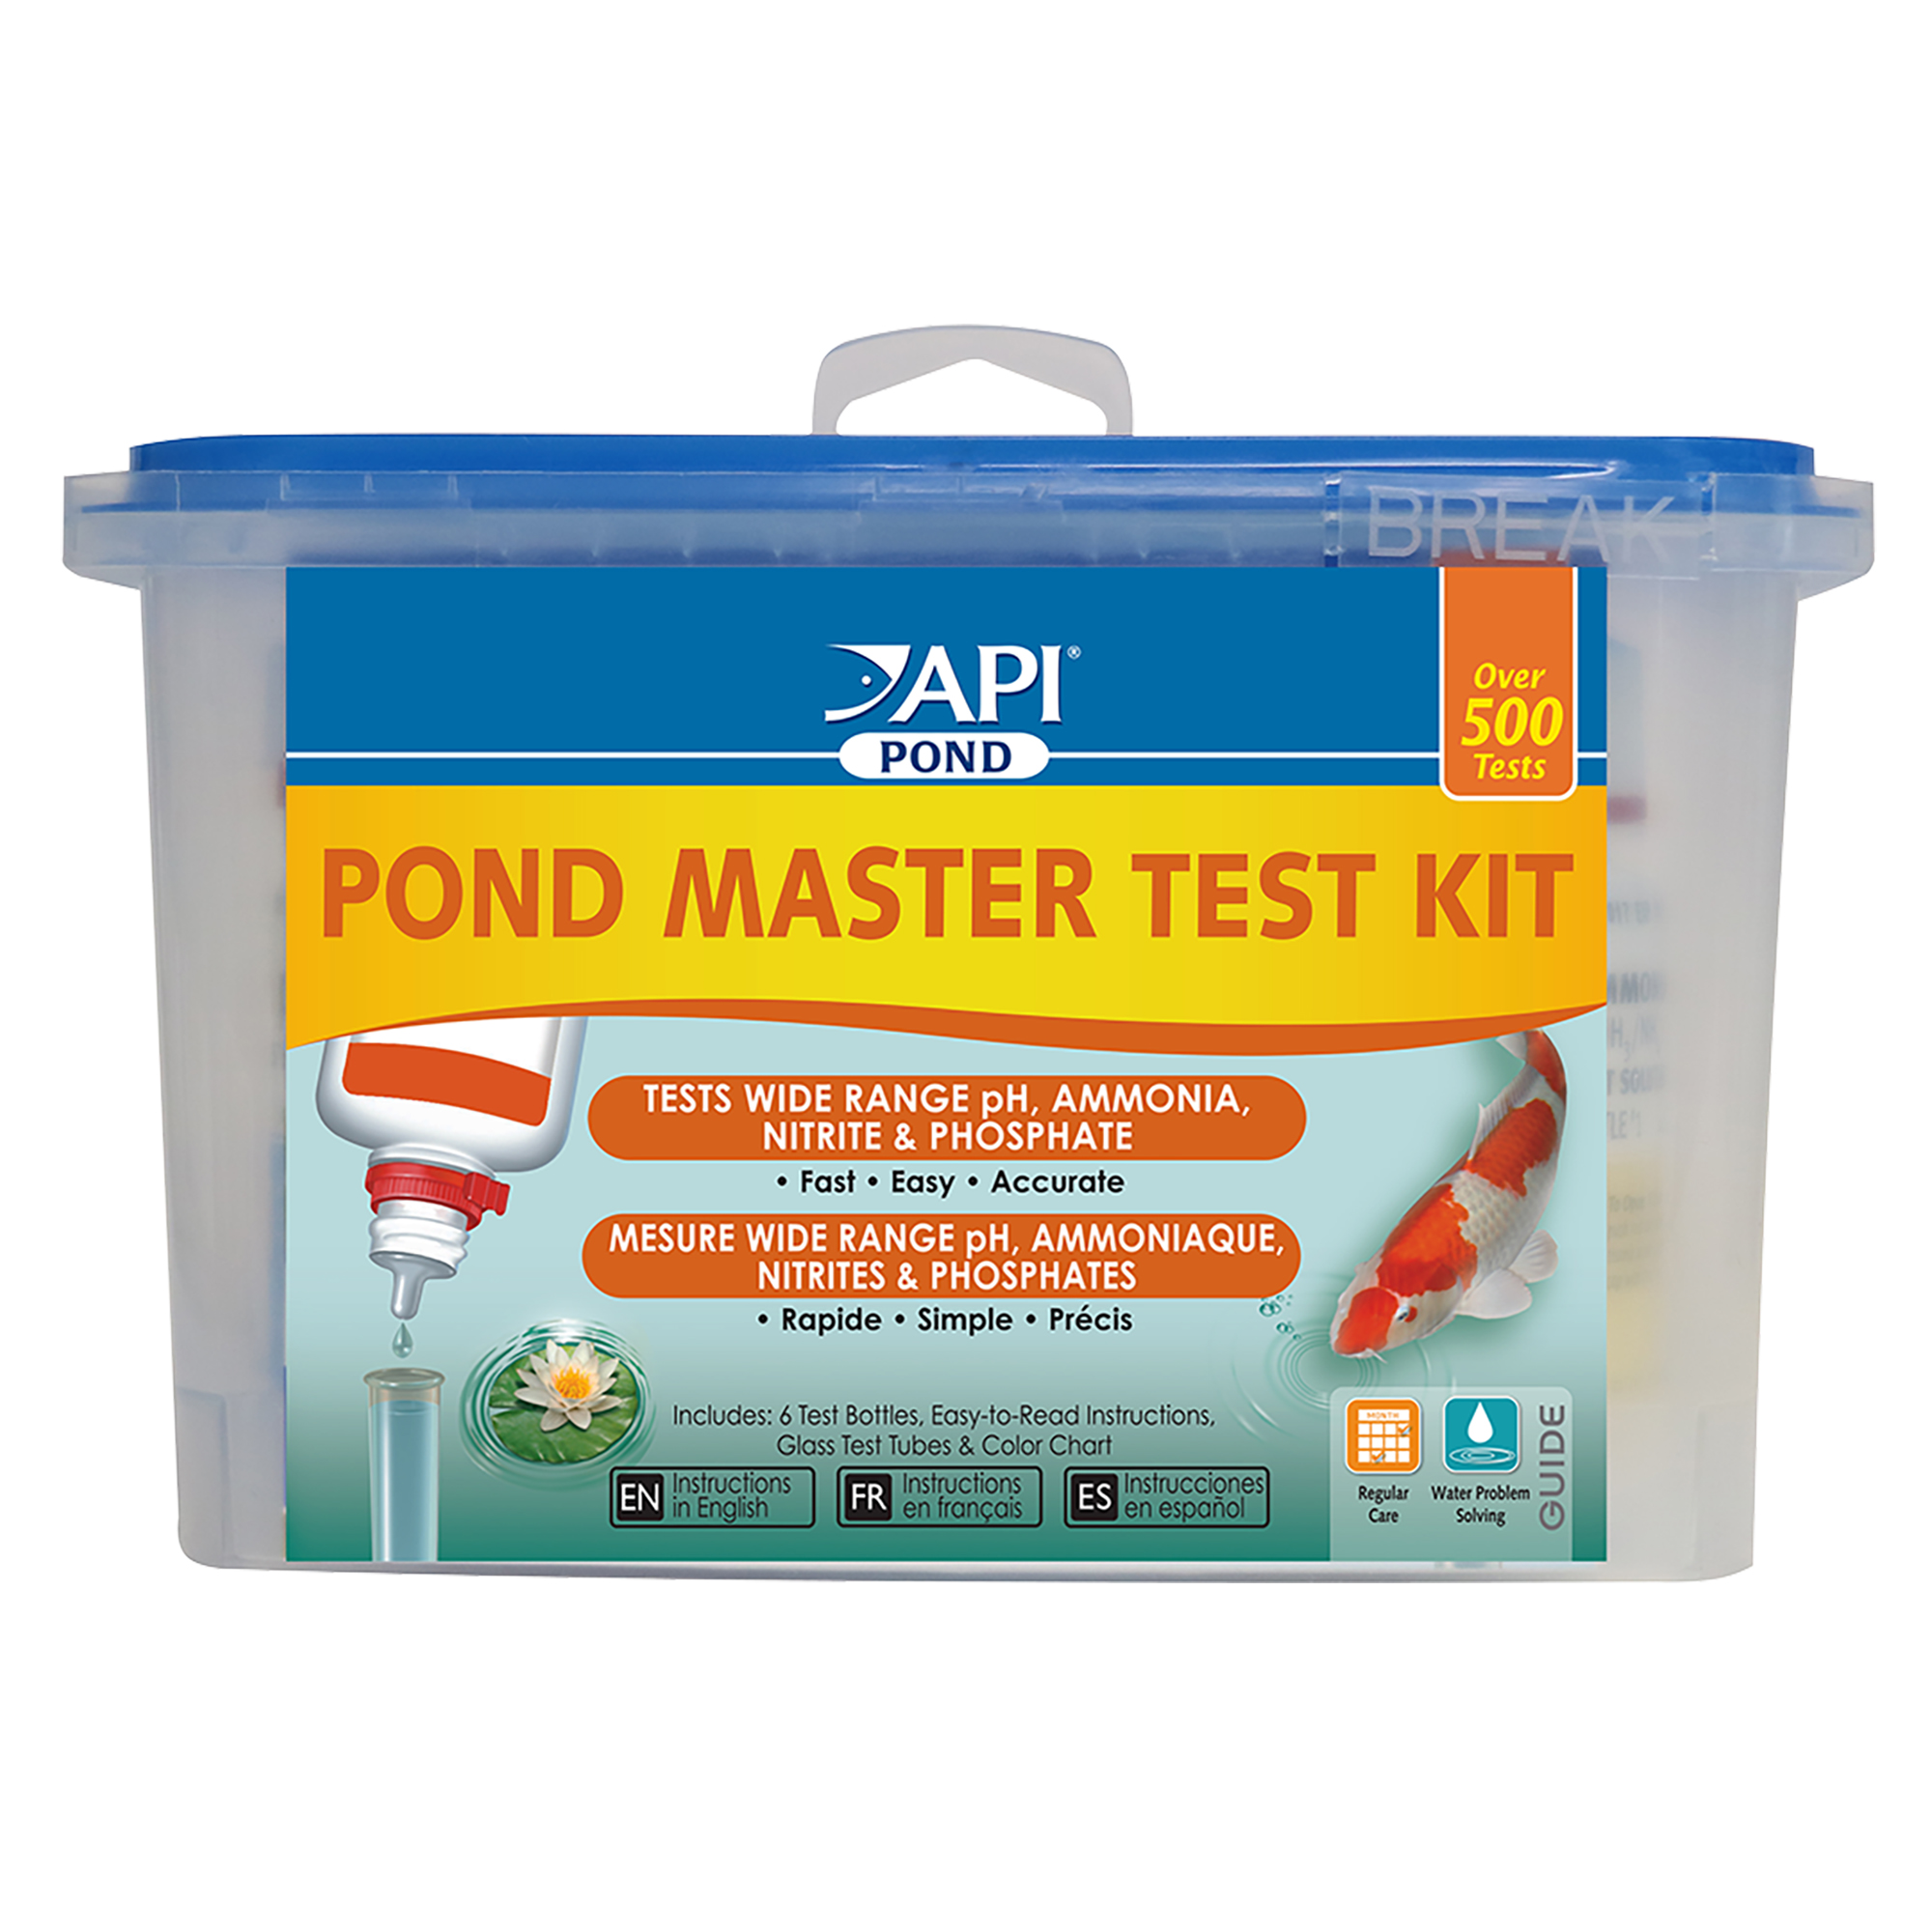 API Pond Master Test Kit, Pond Water Test Kit, 500-Test